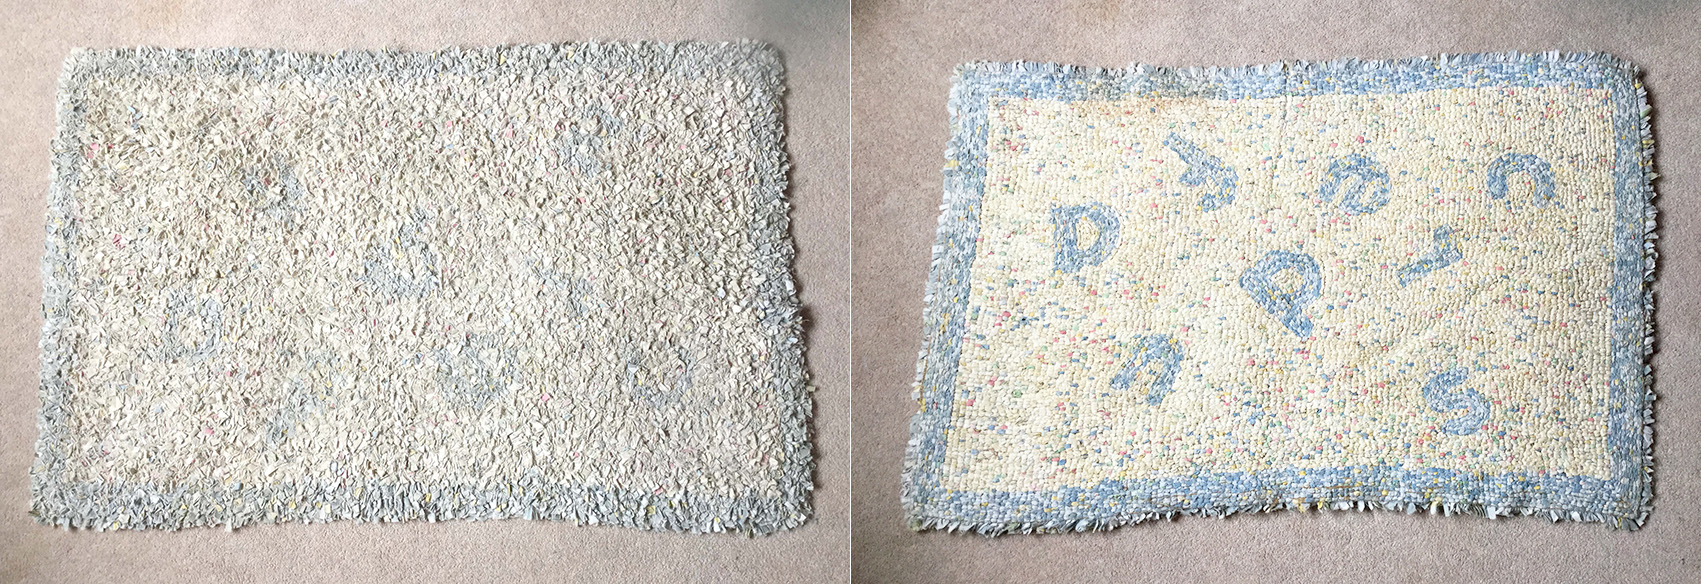 An old blue and white rag rug with letters on it